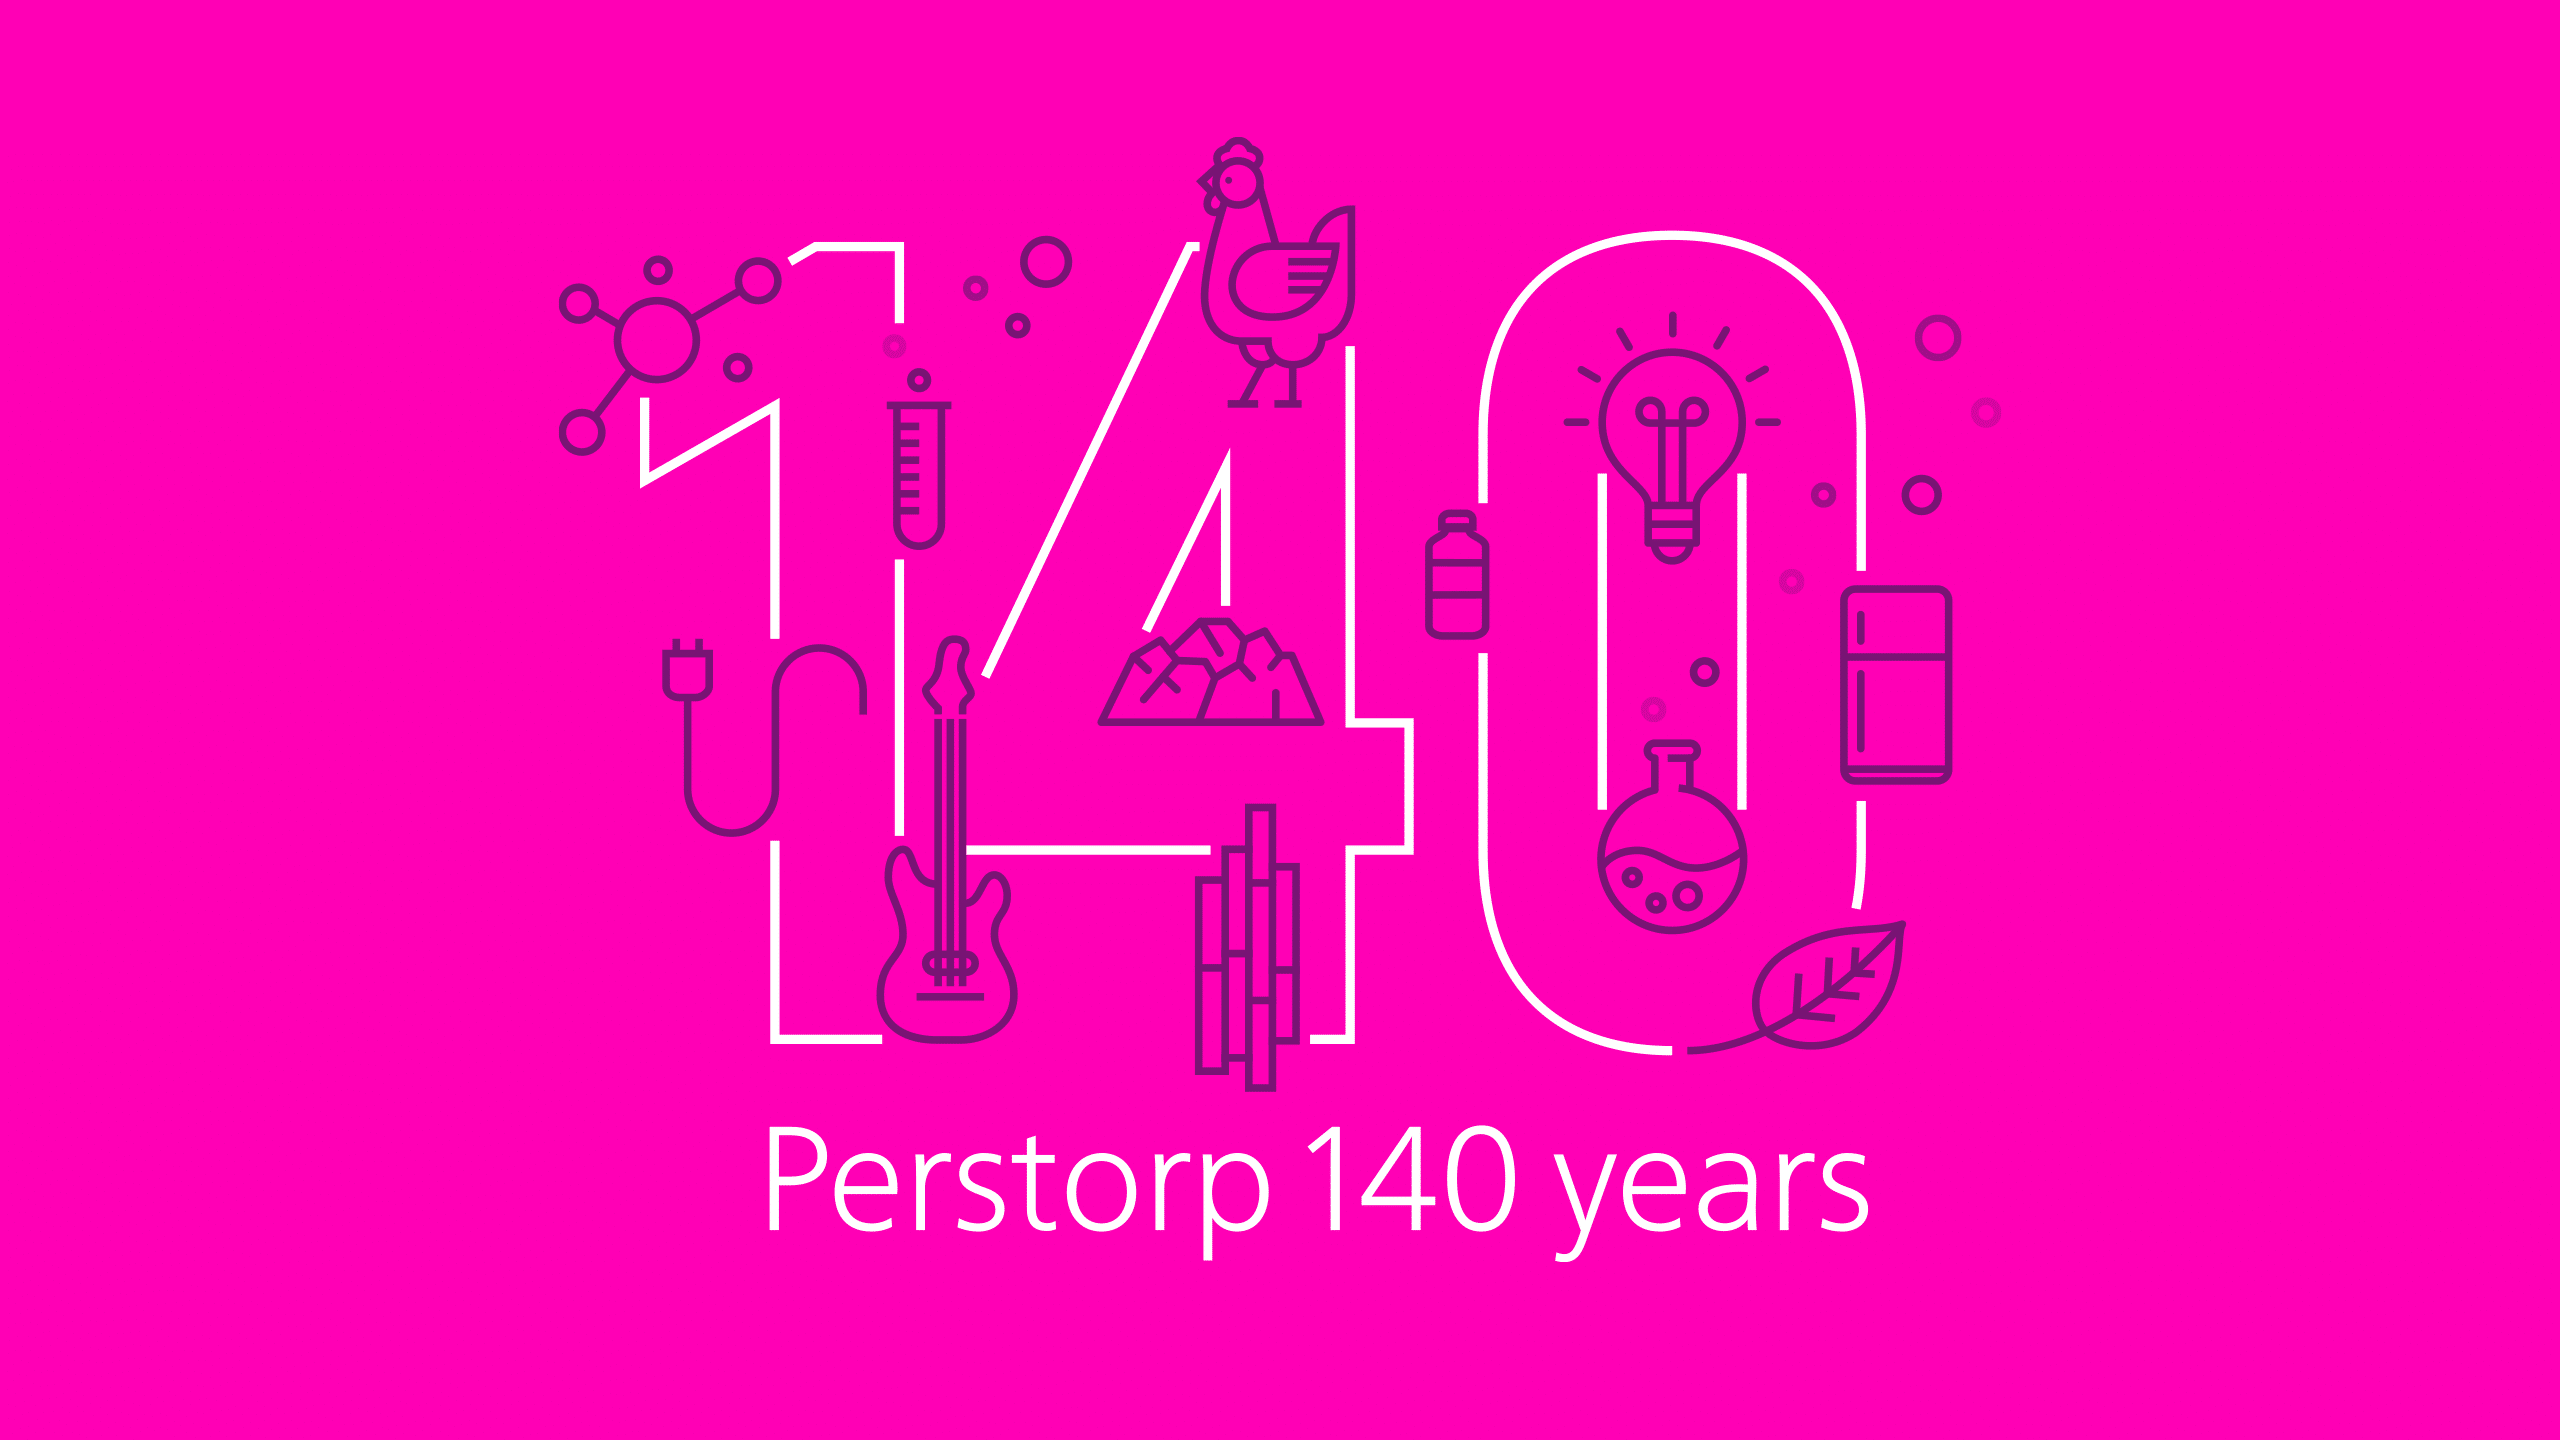 Final symbol for Perstorp 140 years anniversary.